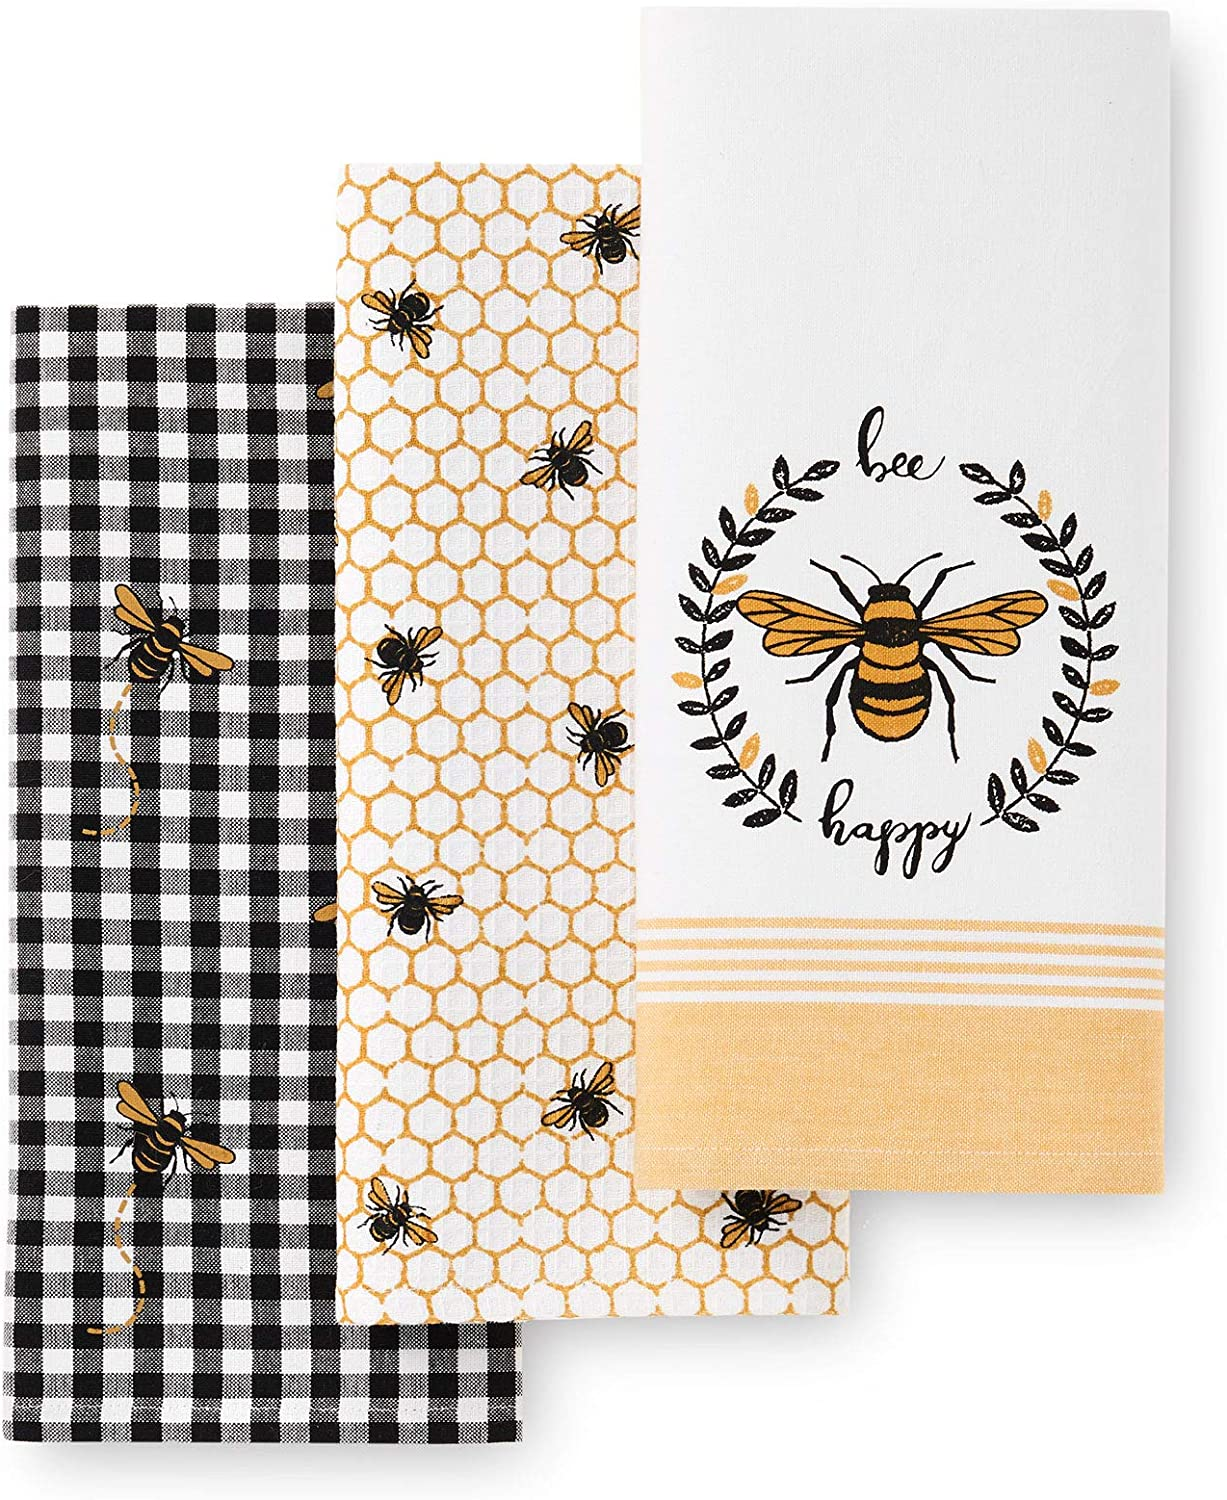 "Elrene Home Fashions Farmhouse Living Bee Happy Honeycomb Kitchen Dish Tea Towel, Set of 3, 18"" x 28"", Multi"